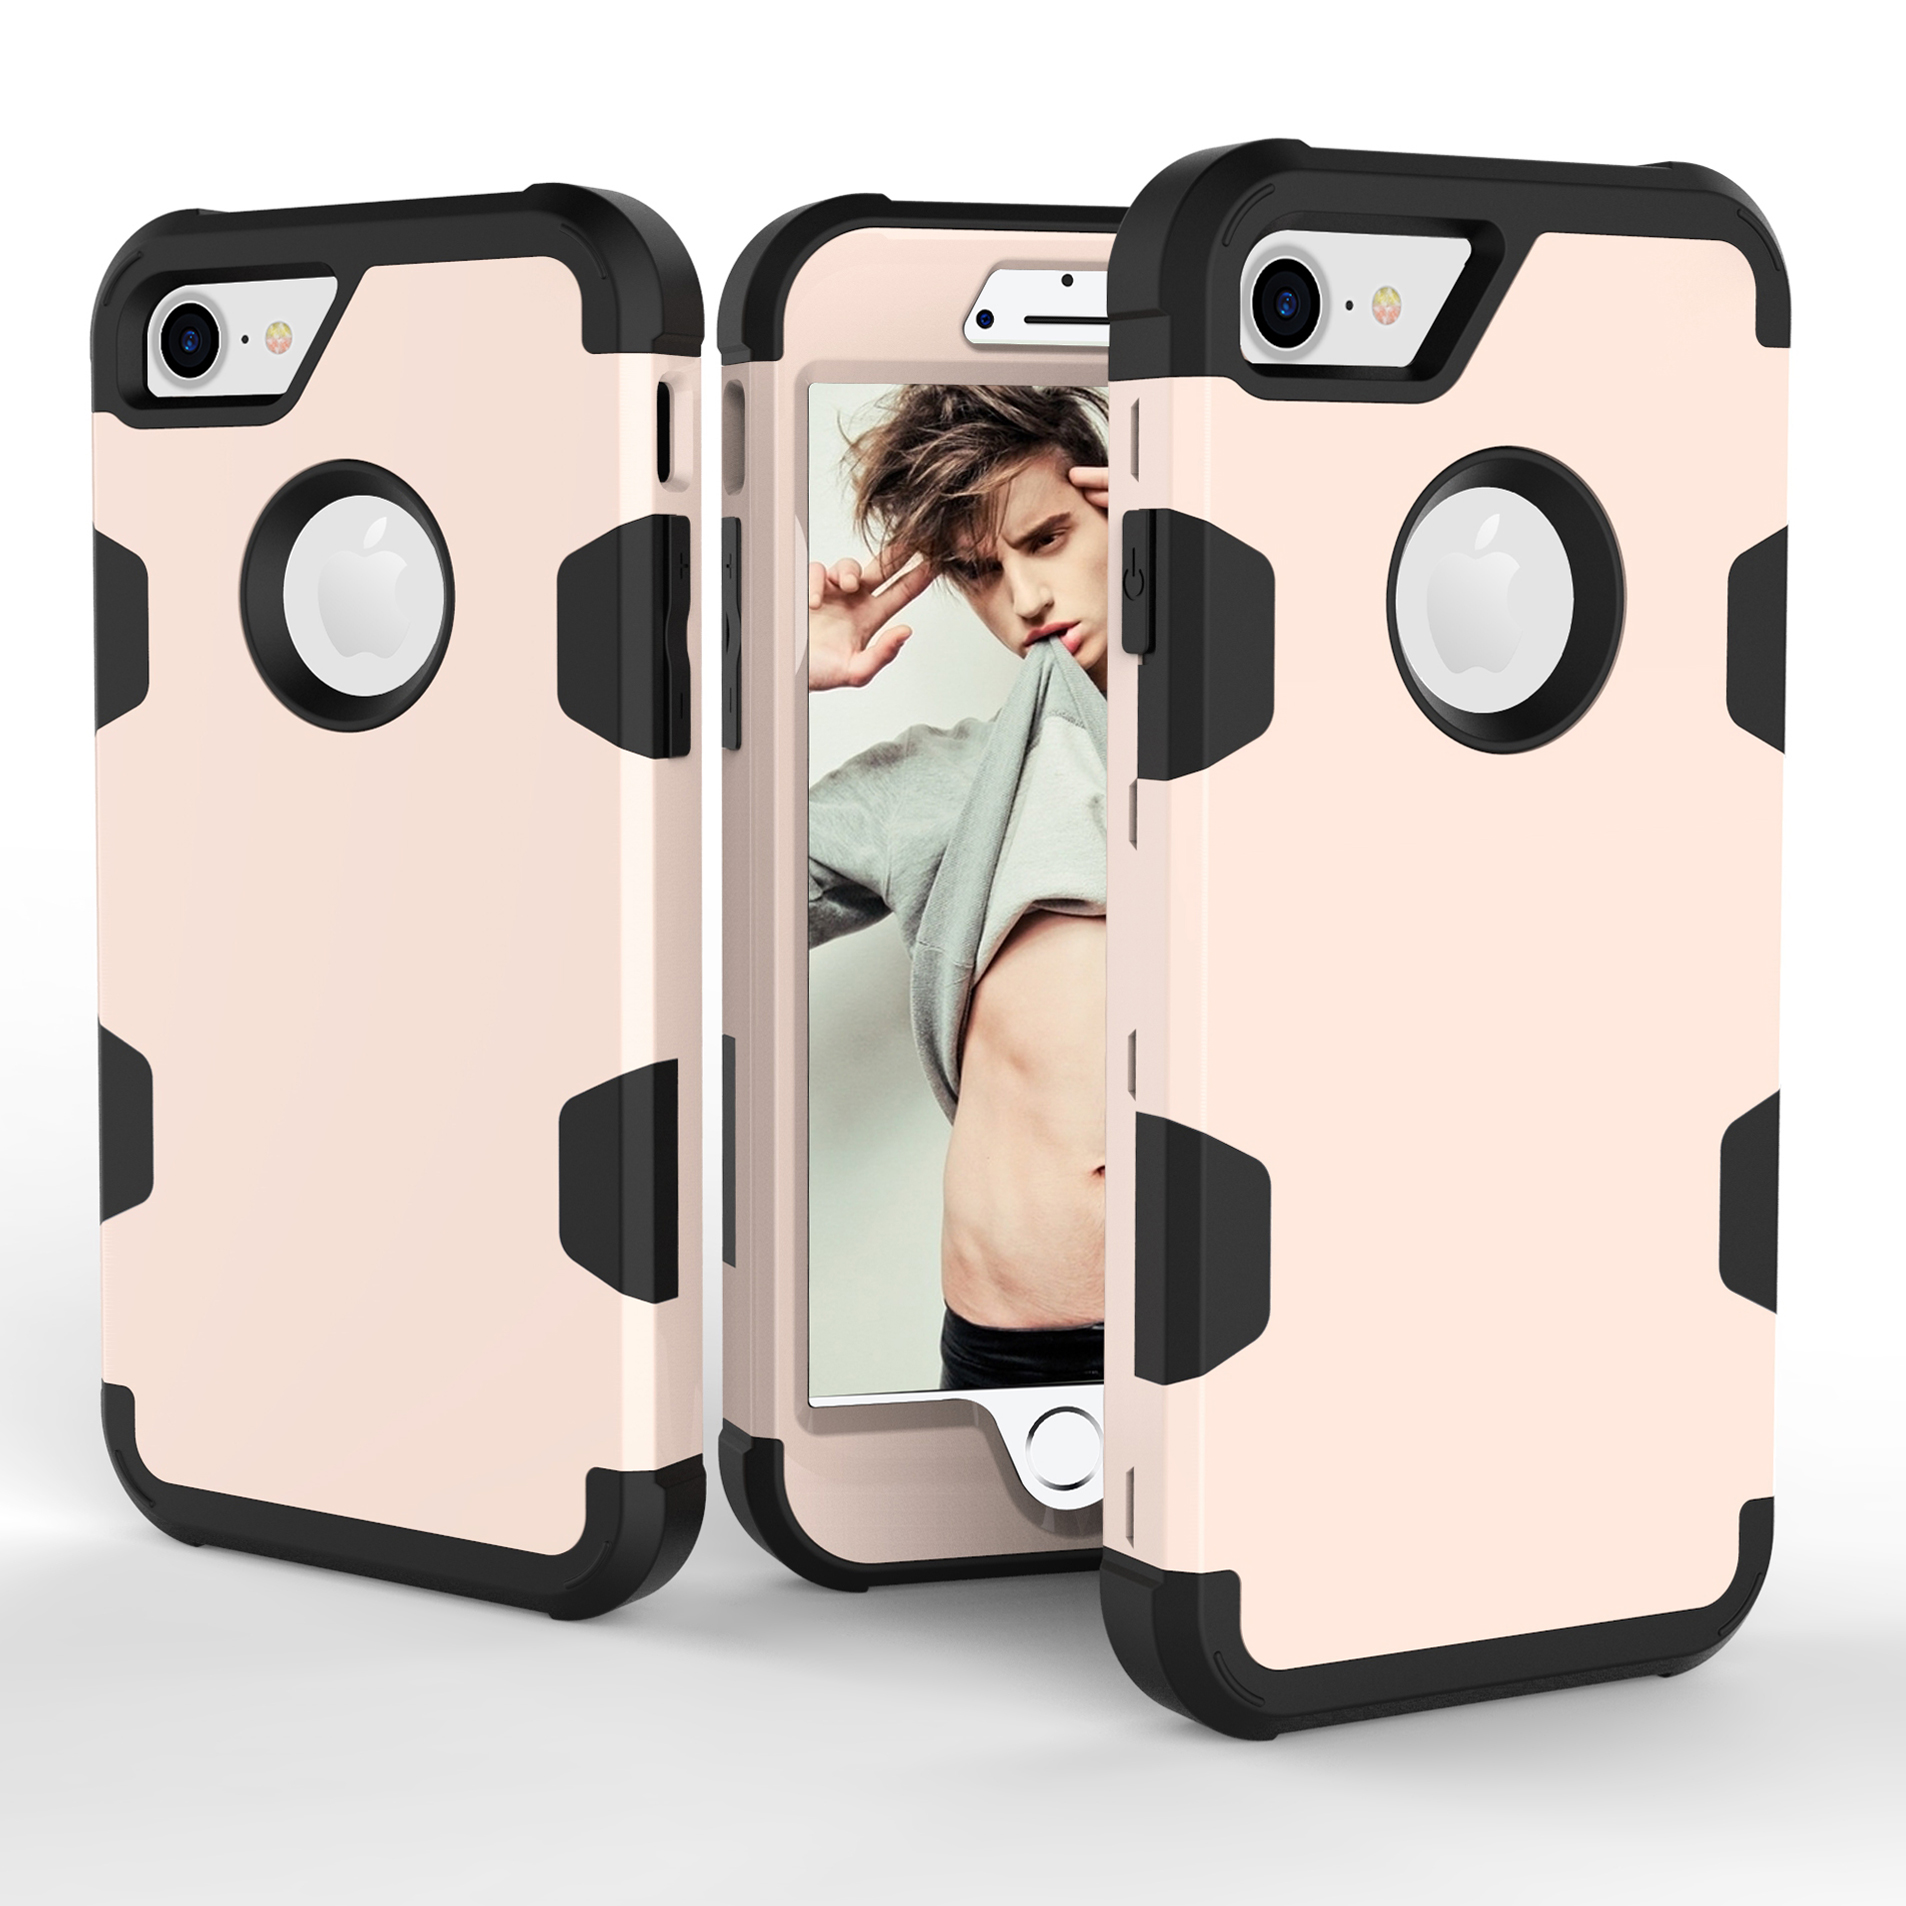 For iPhone 7 PC+ Silicone 2 in 1 Hit Color Tri-proof Shockproof Dustproof Anti-fall Protective Cover Back Case Gold + black